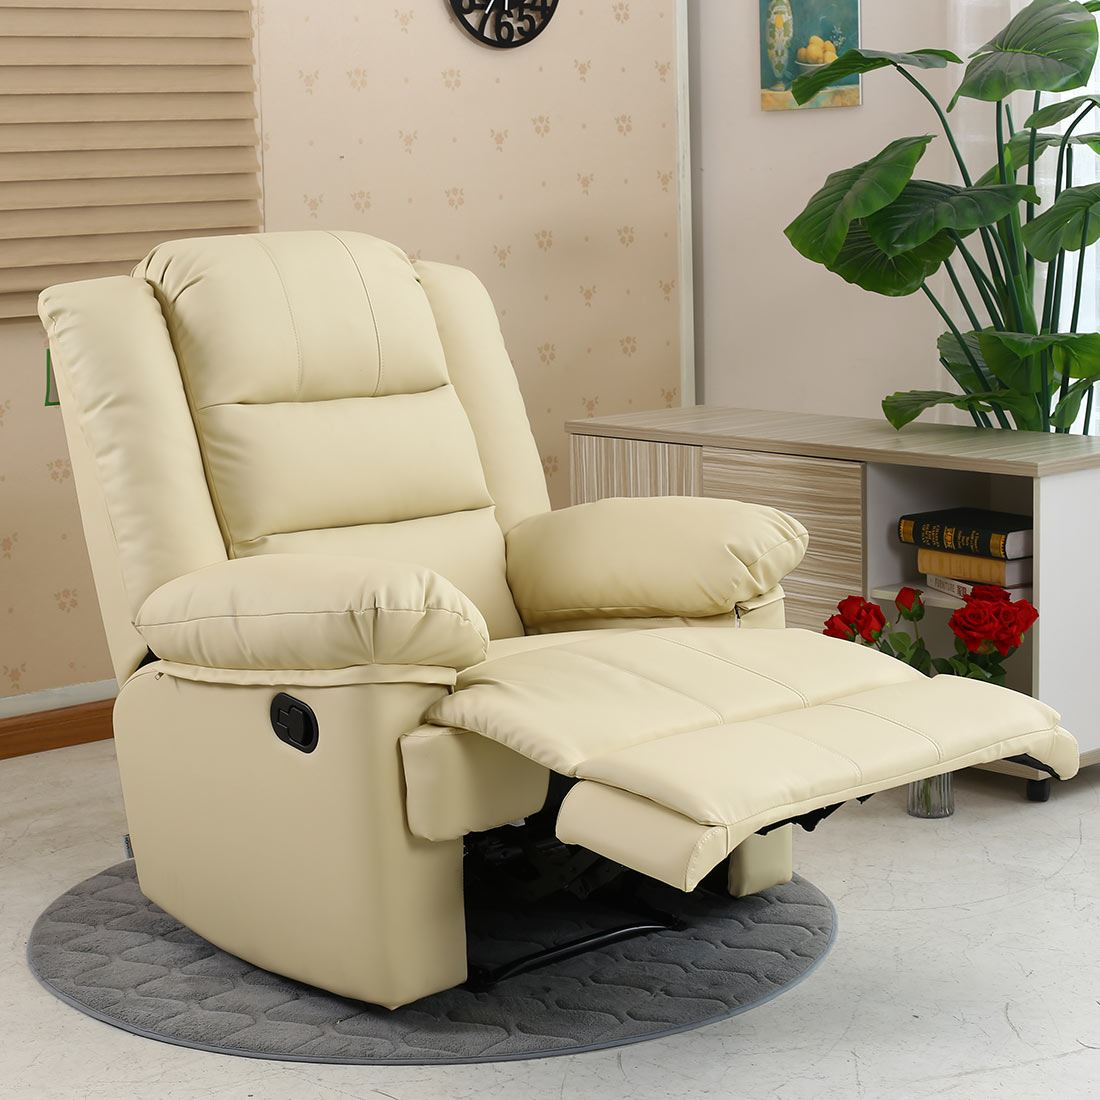 Brown Loxley Leather Recliner Armchair Sofa Home Lounge Chair Reclining Gaming